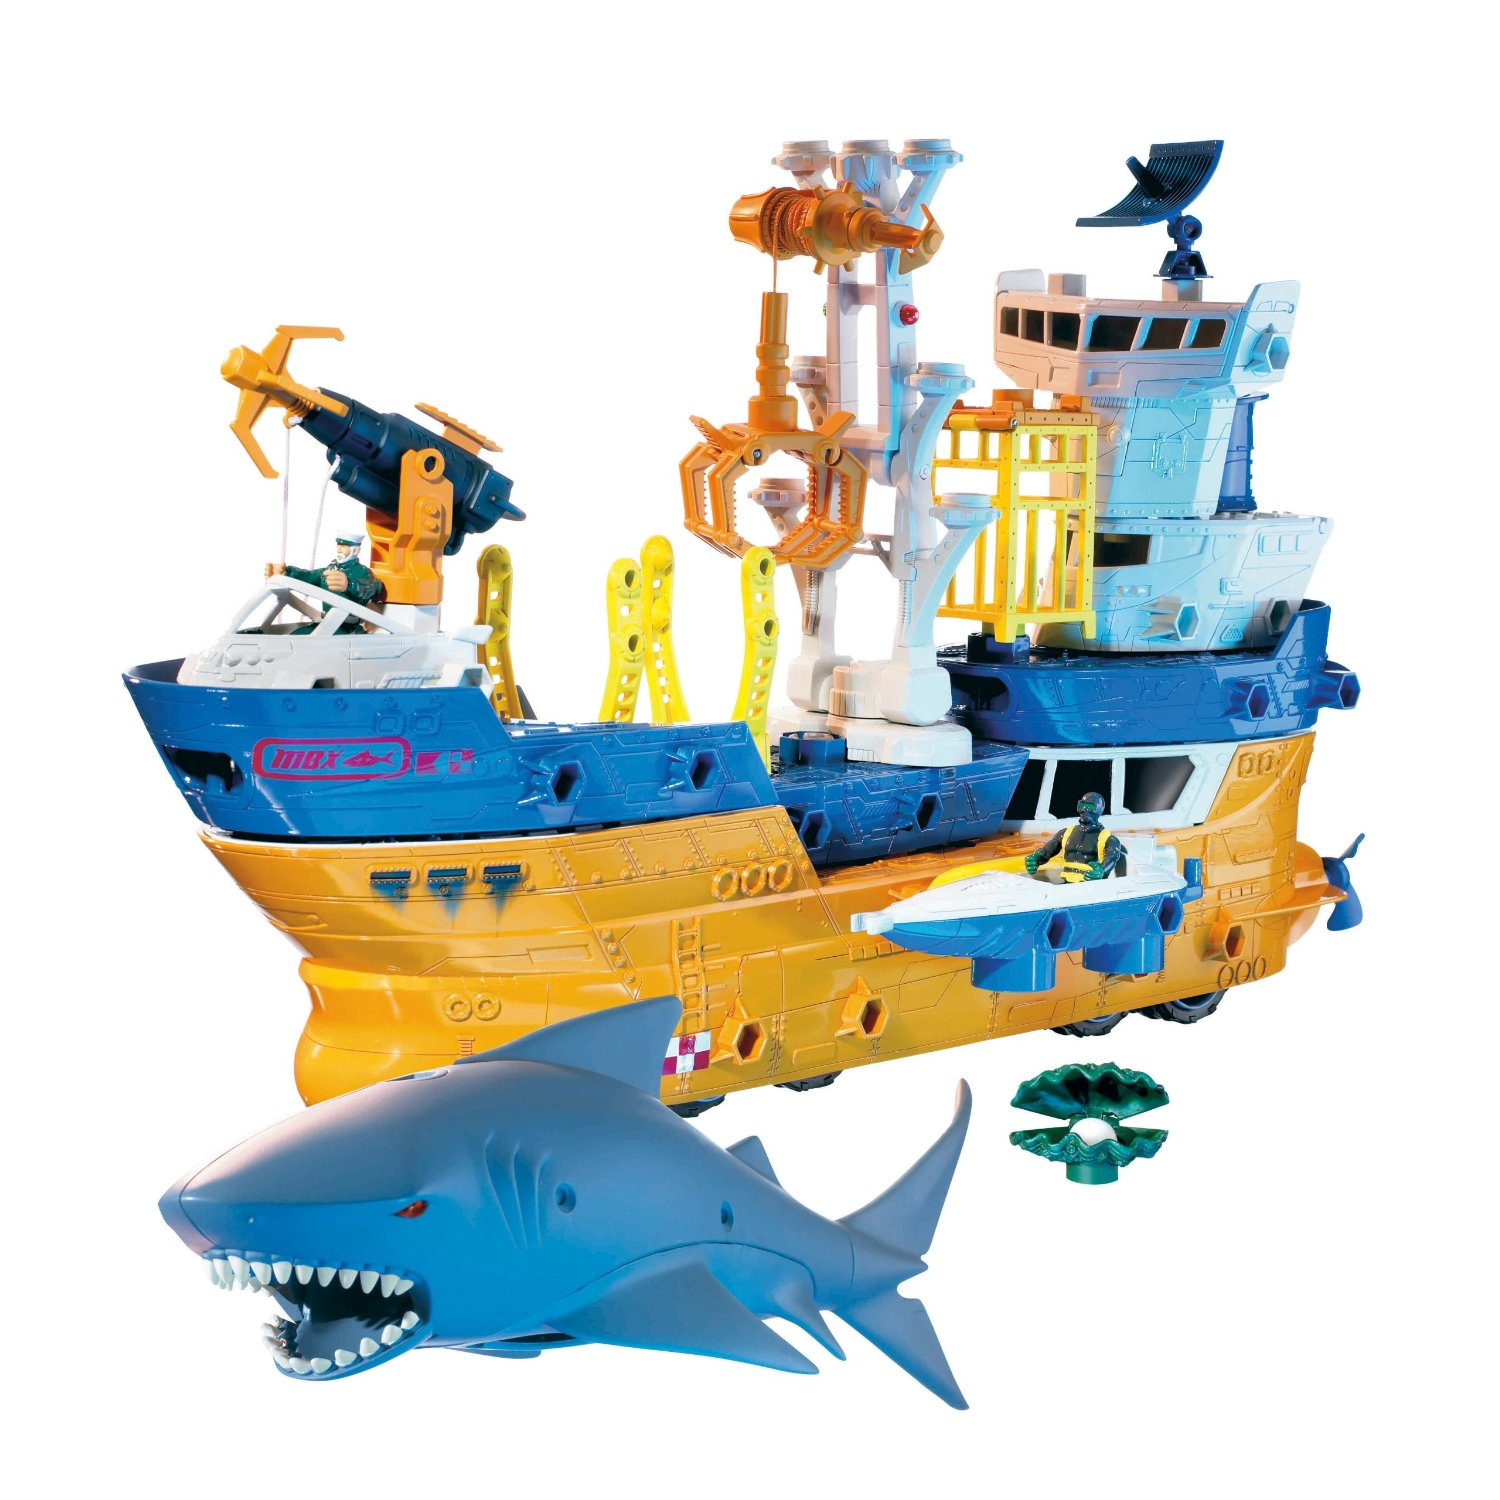 Shark Toys At Walmart : Get the mattel matchbox shark rig for shipped free